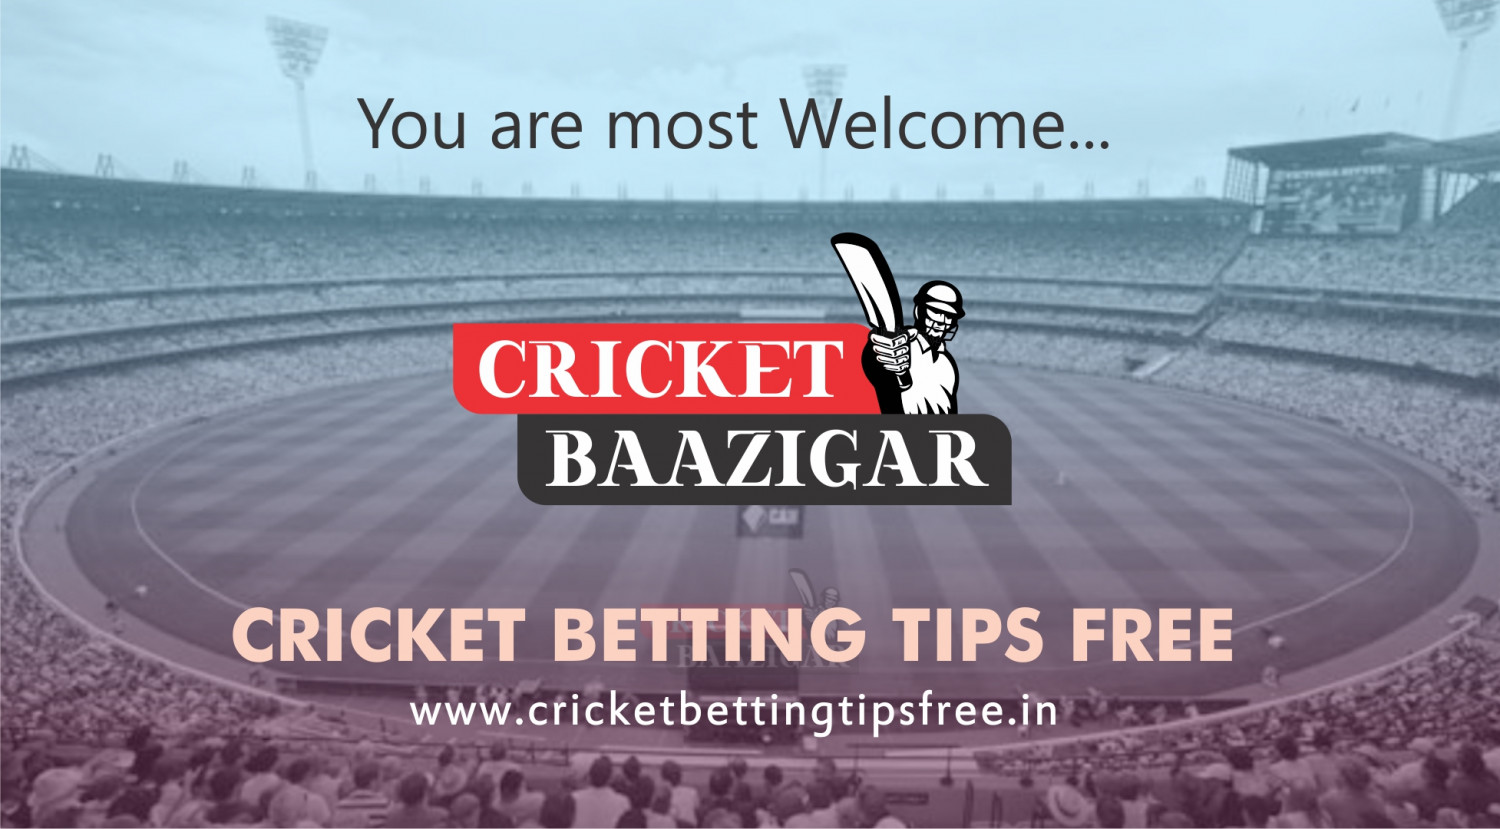 Cricket Betting Tips and Match Prediction Infographic